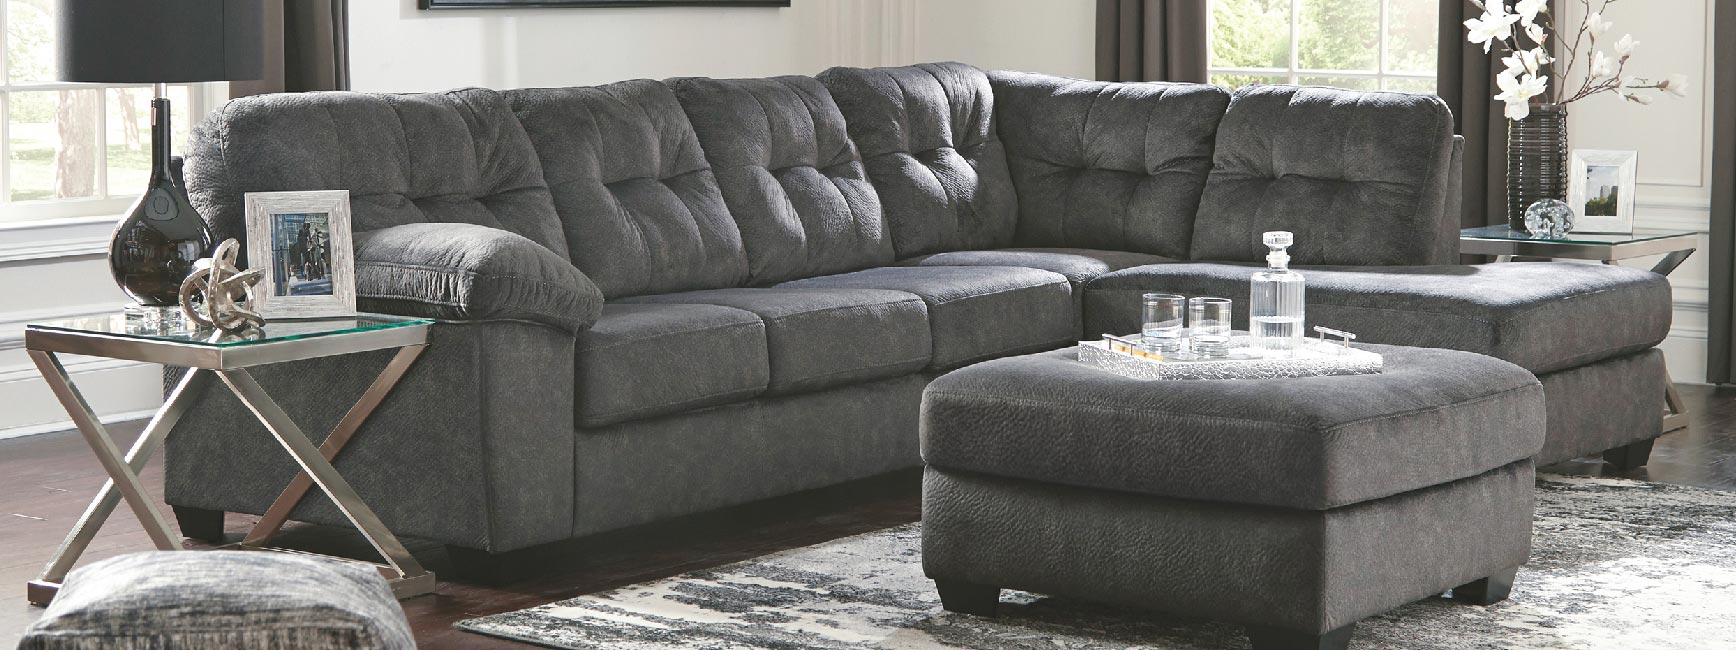 Sofa Take Home Today Visit Our Home Furniture Store In Sacramento Ca